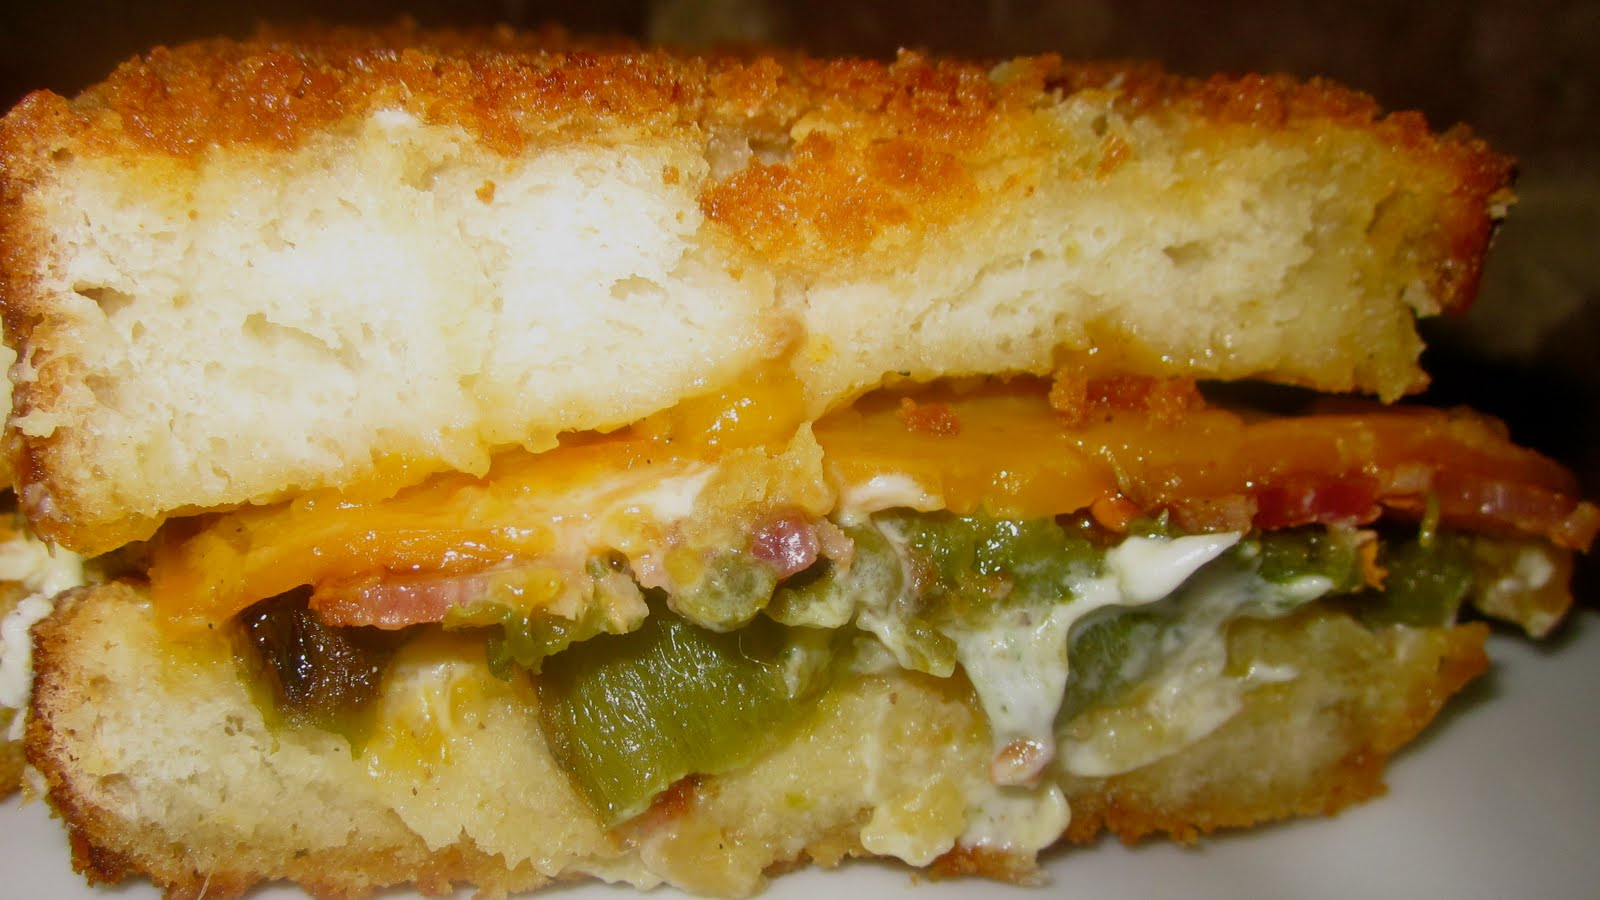 Haute + Heirloom: Jalapeno Popper Sandwich with Sassy Jezebel Sauce